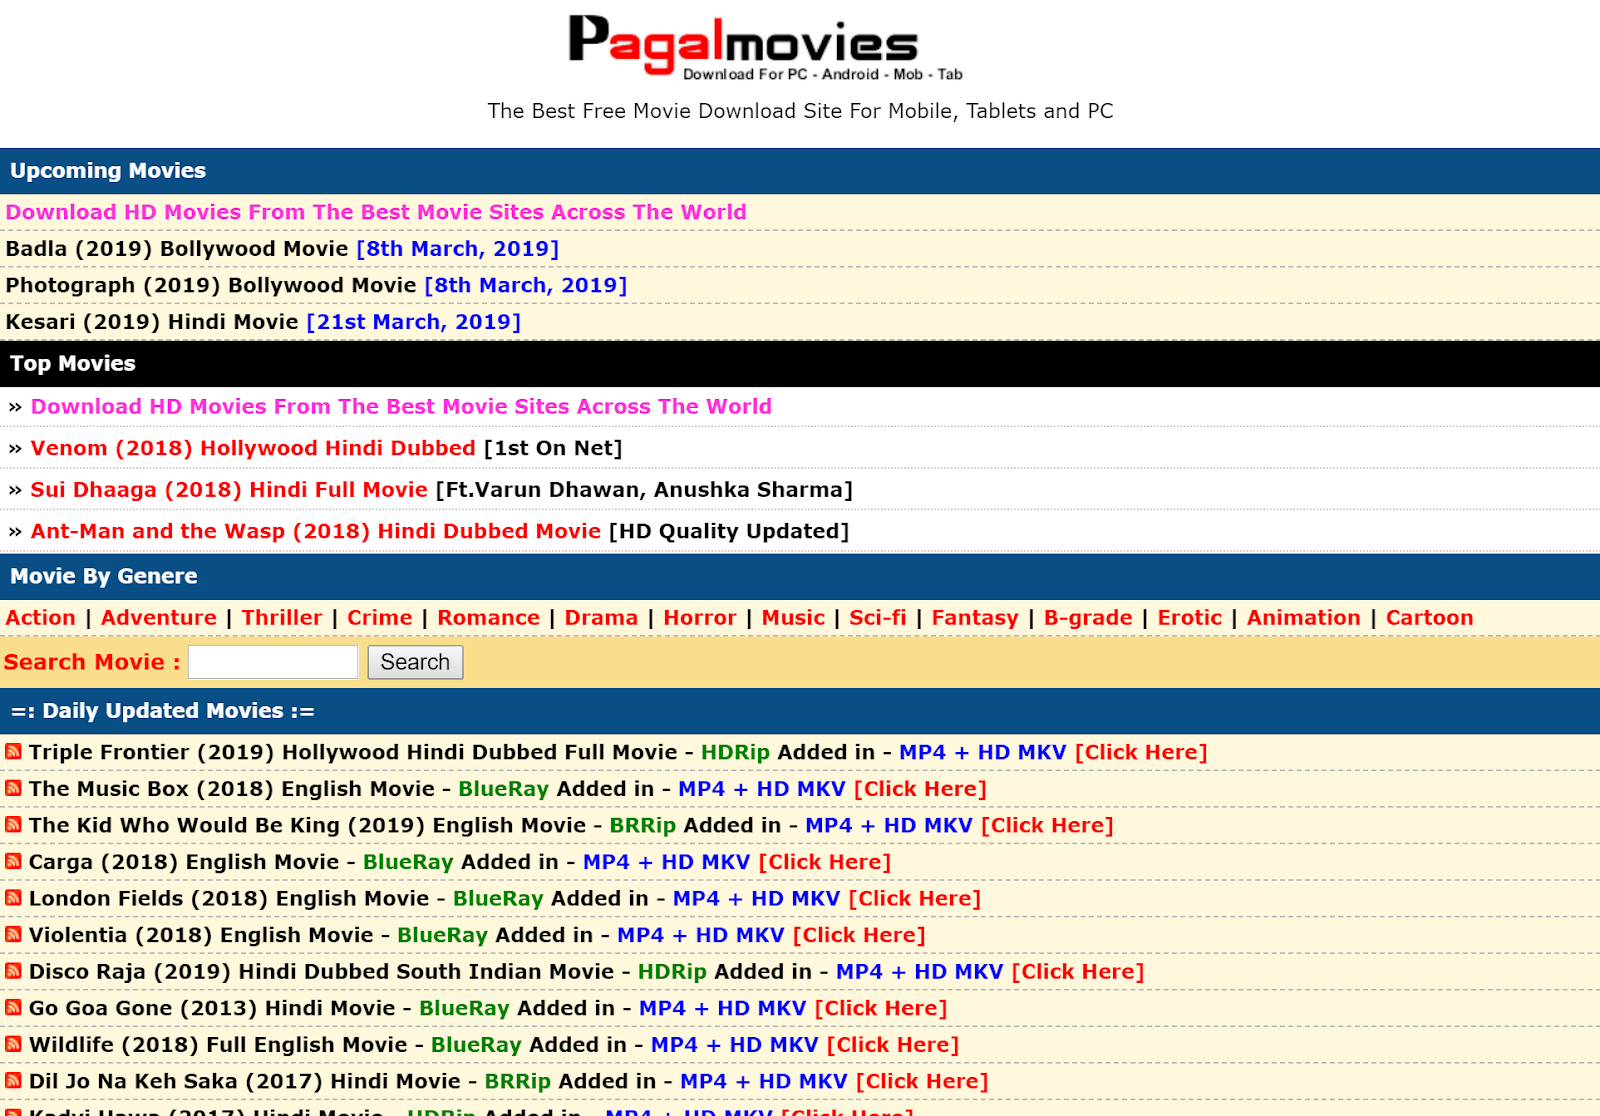 free download of hd movies for mobile